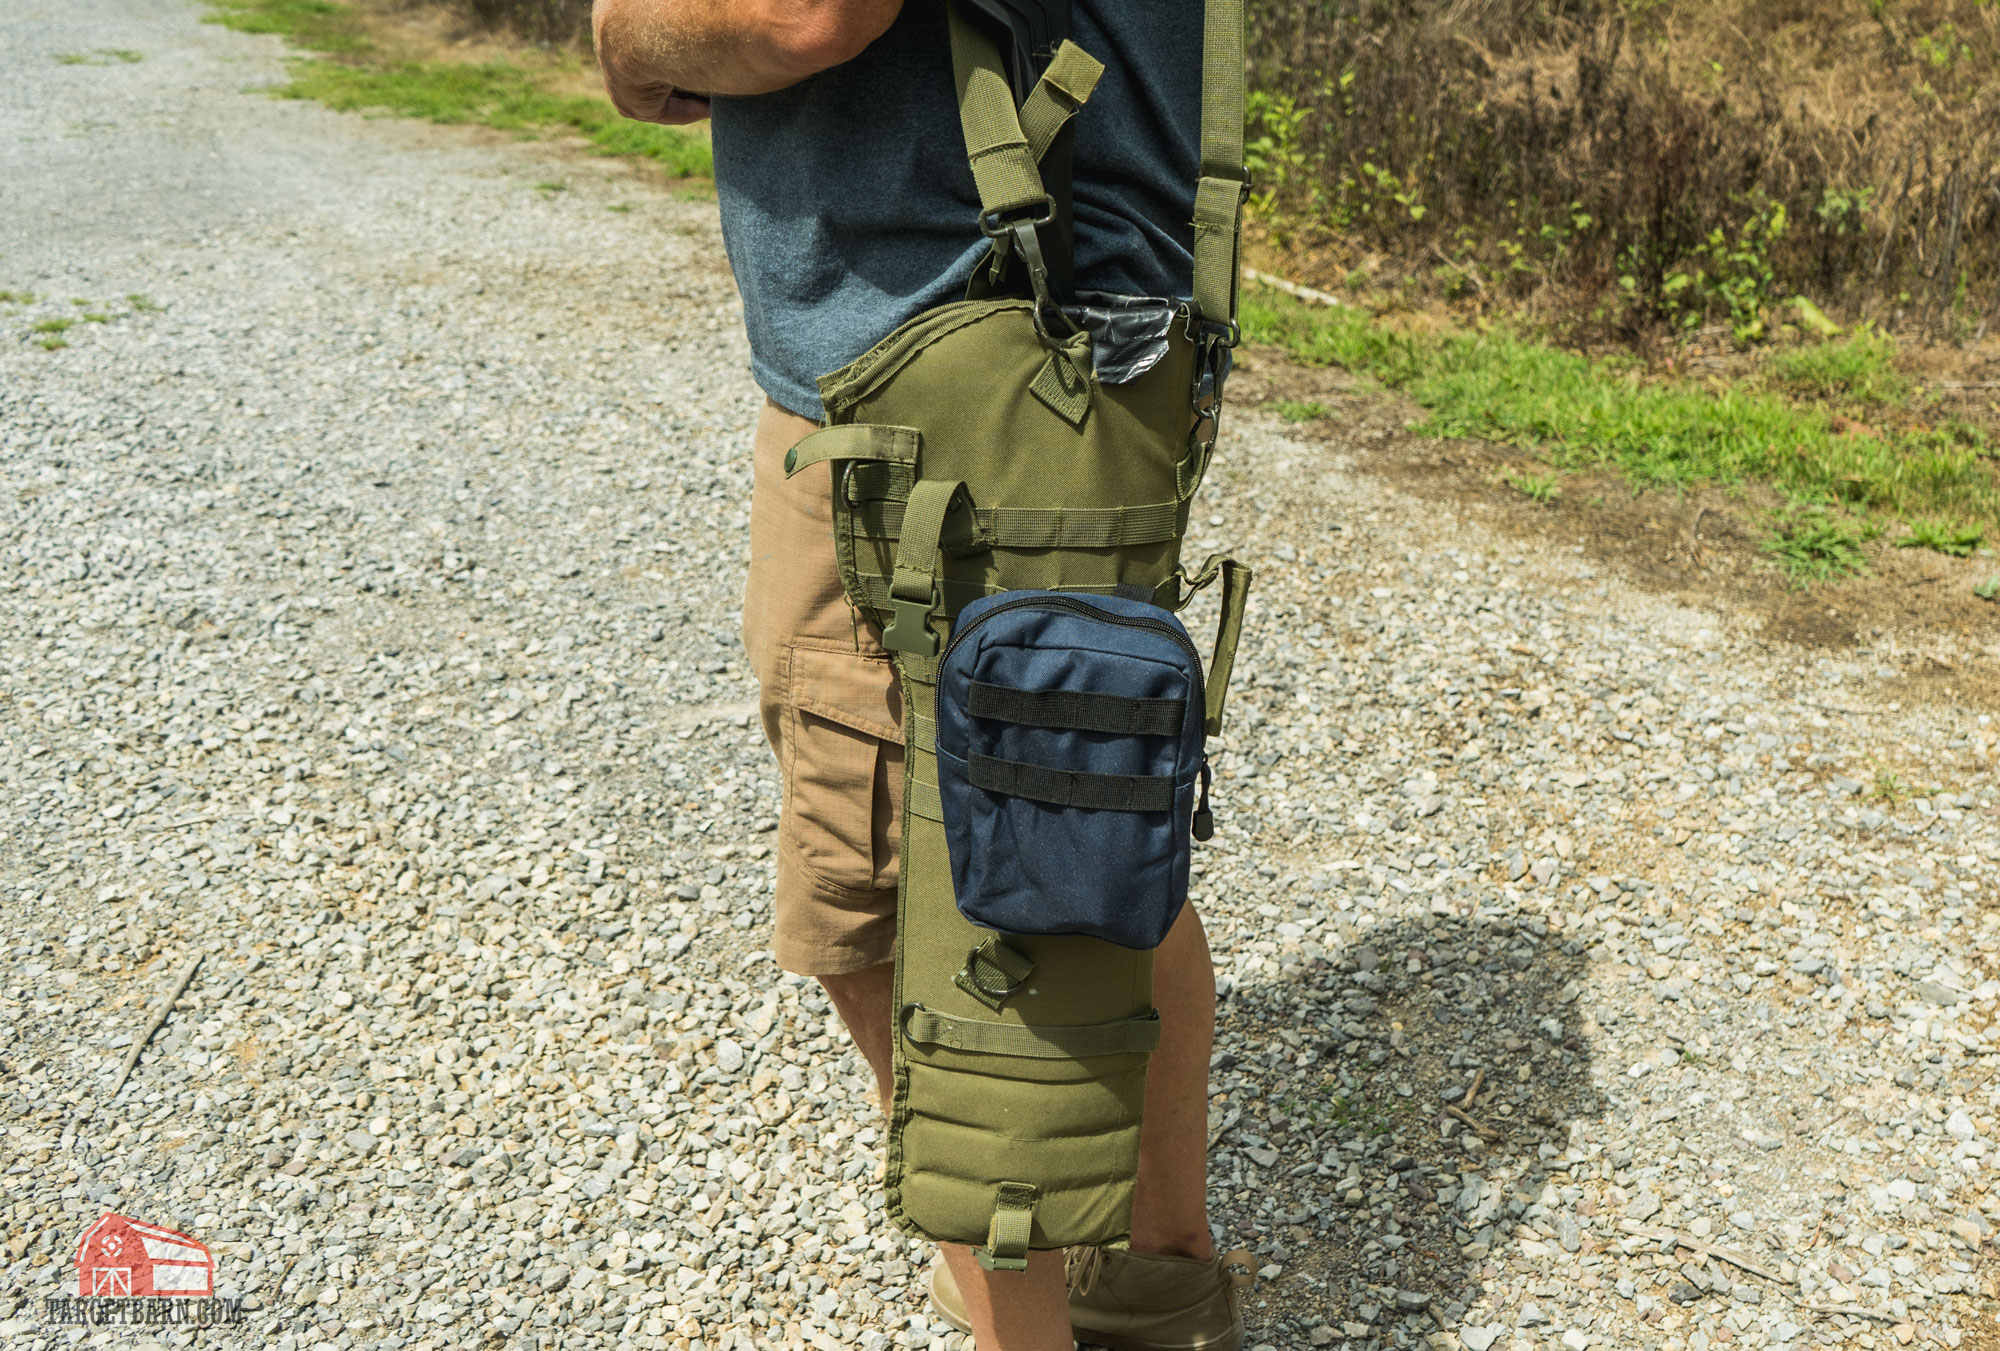 a range bag for a rifle is needed to transport the rifle between stages